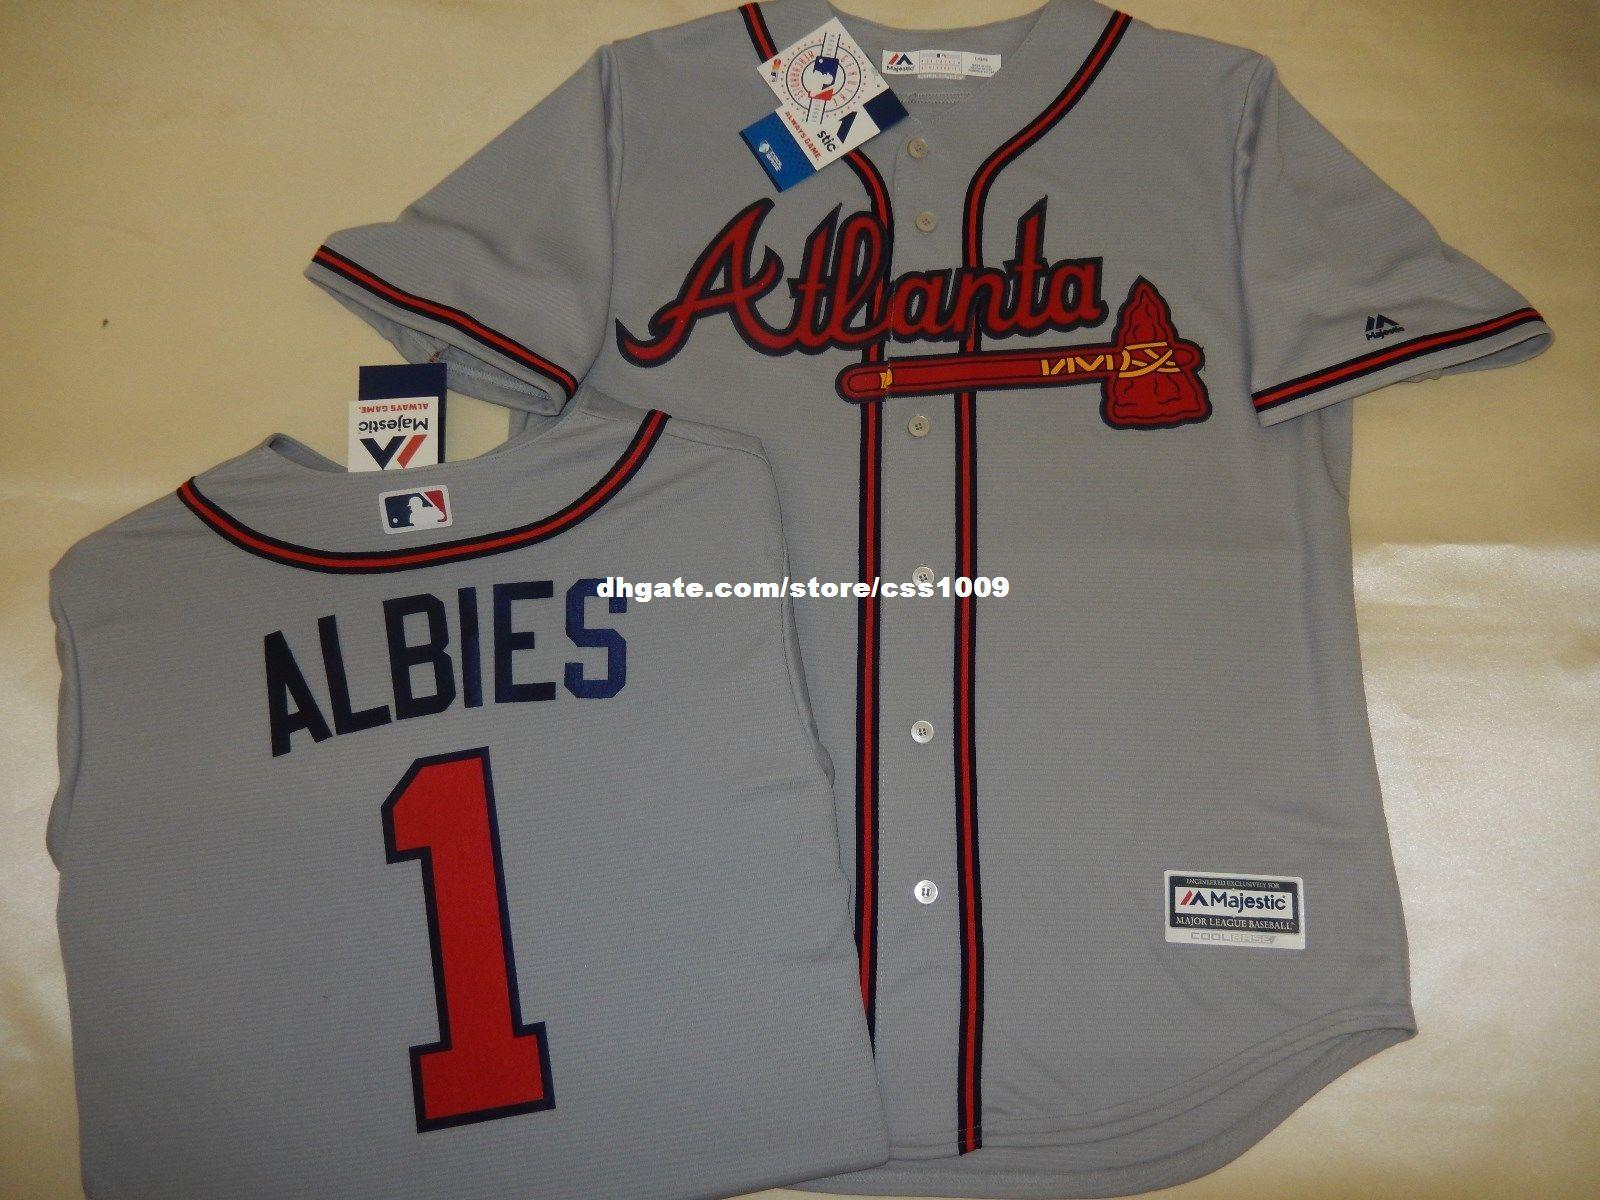 2018 Cheap Custom Atlanta Ozzie Albies Baseball Cool Base Jerseys Gray  Stitched Retro Jerseys Customize Any Name Number Men Women Youth Xs 5xl  From Css1009 288de6e4b